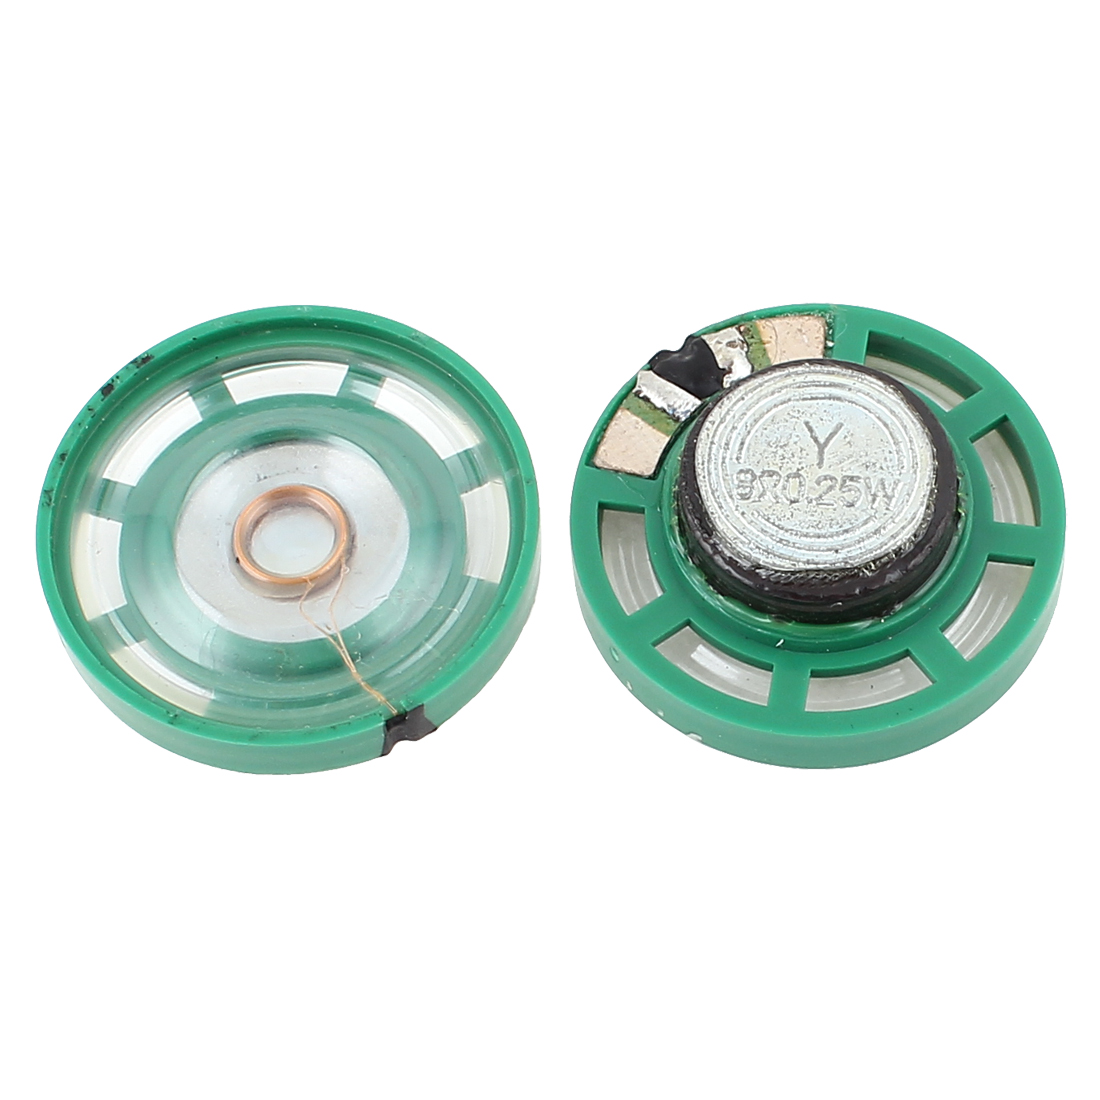 2 Pcs 0.25W 8 Ohm 29mm Outside Magnet Electronic Toy Loudspeaker